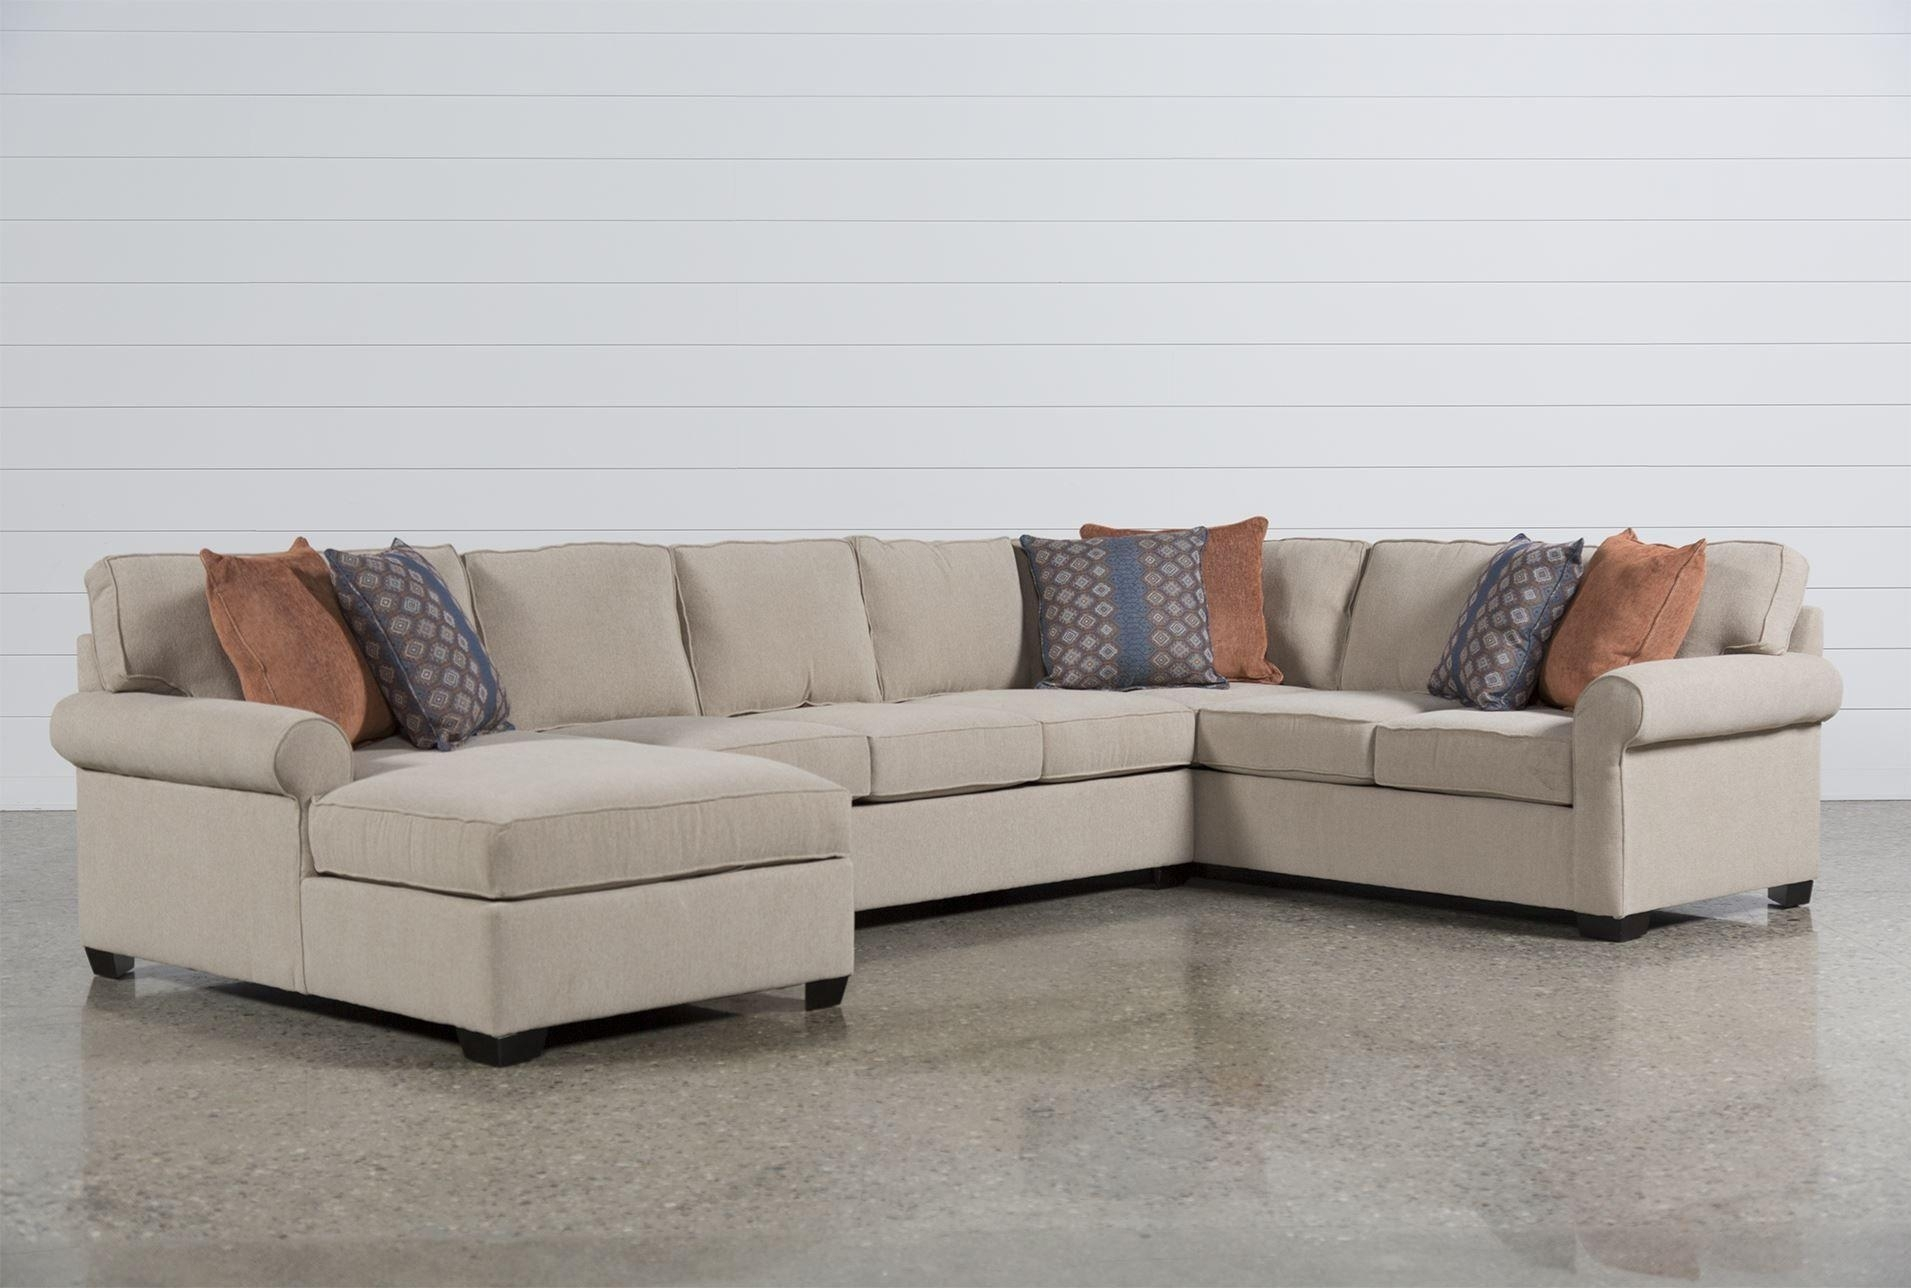 Furniture : Target Loveseat Unique Glamour Ii 3 Piece Sectional Intended For Target Sectional Sofas (Image 4 of 10)